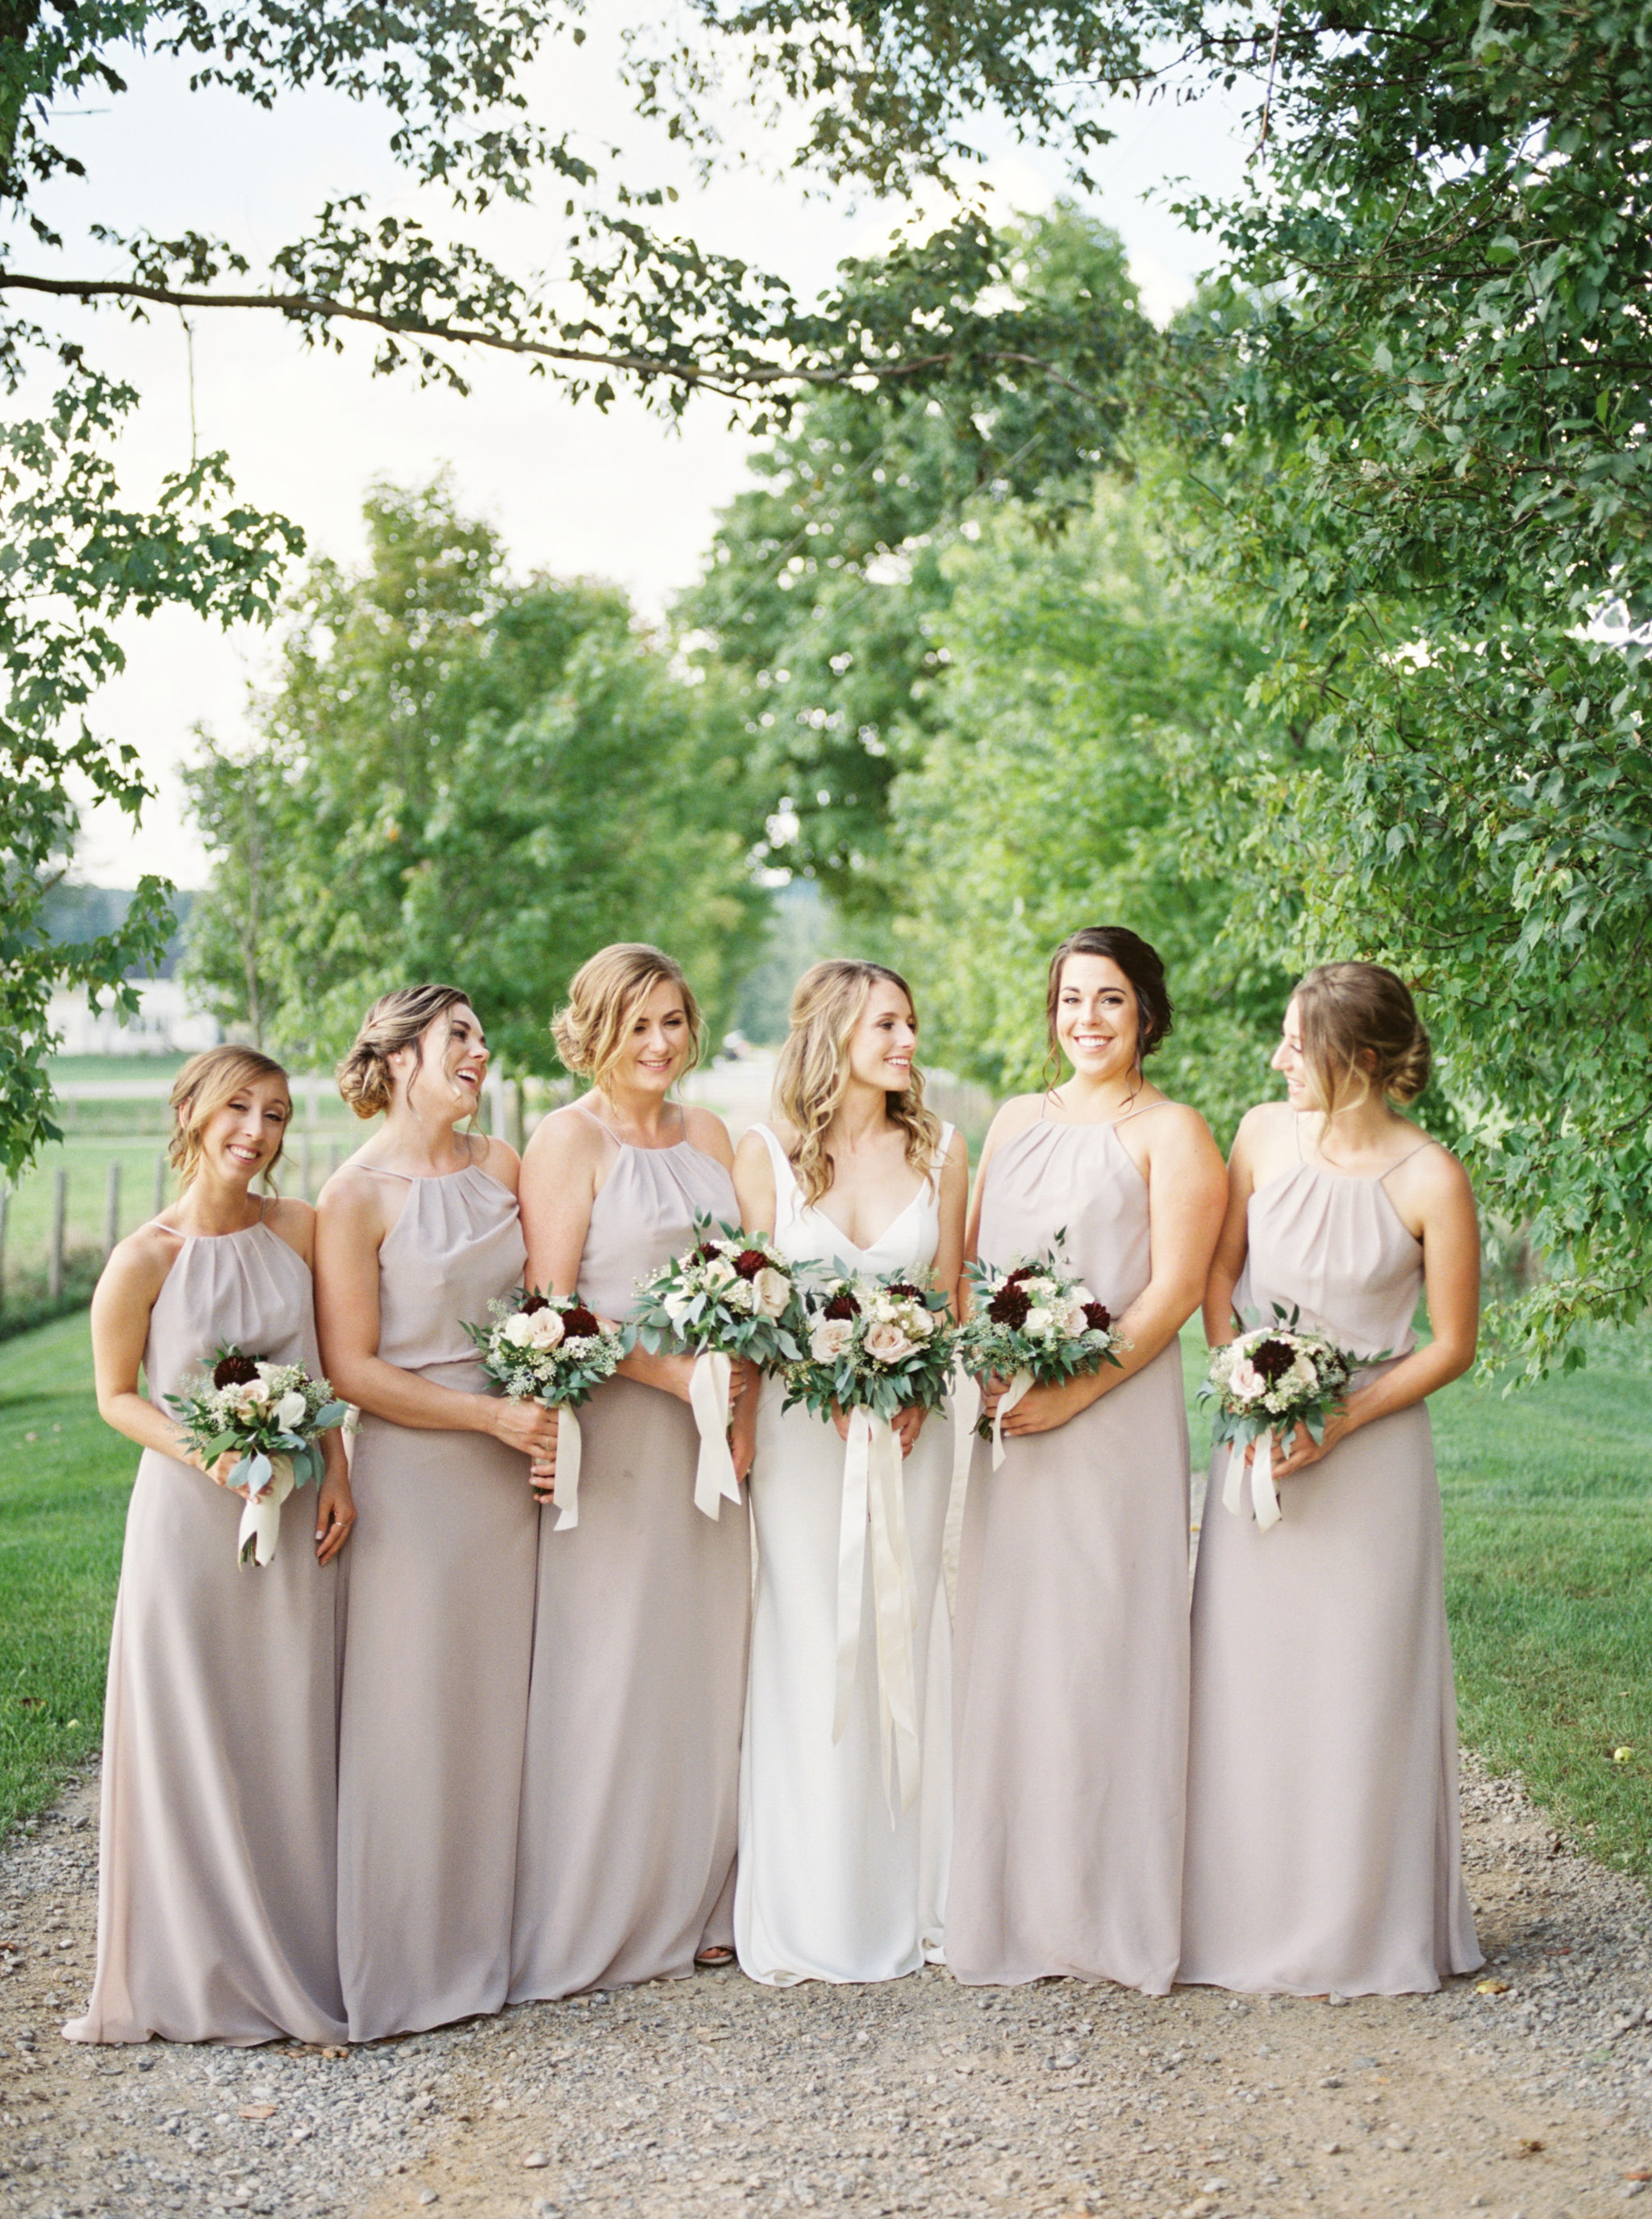 Bridesmaids photos outside.